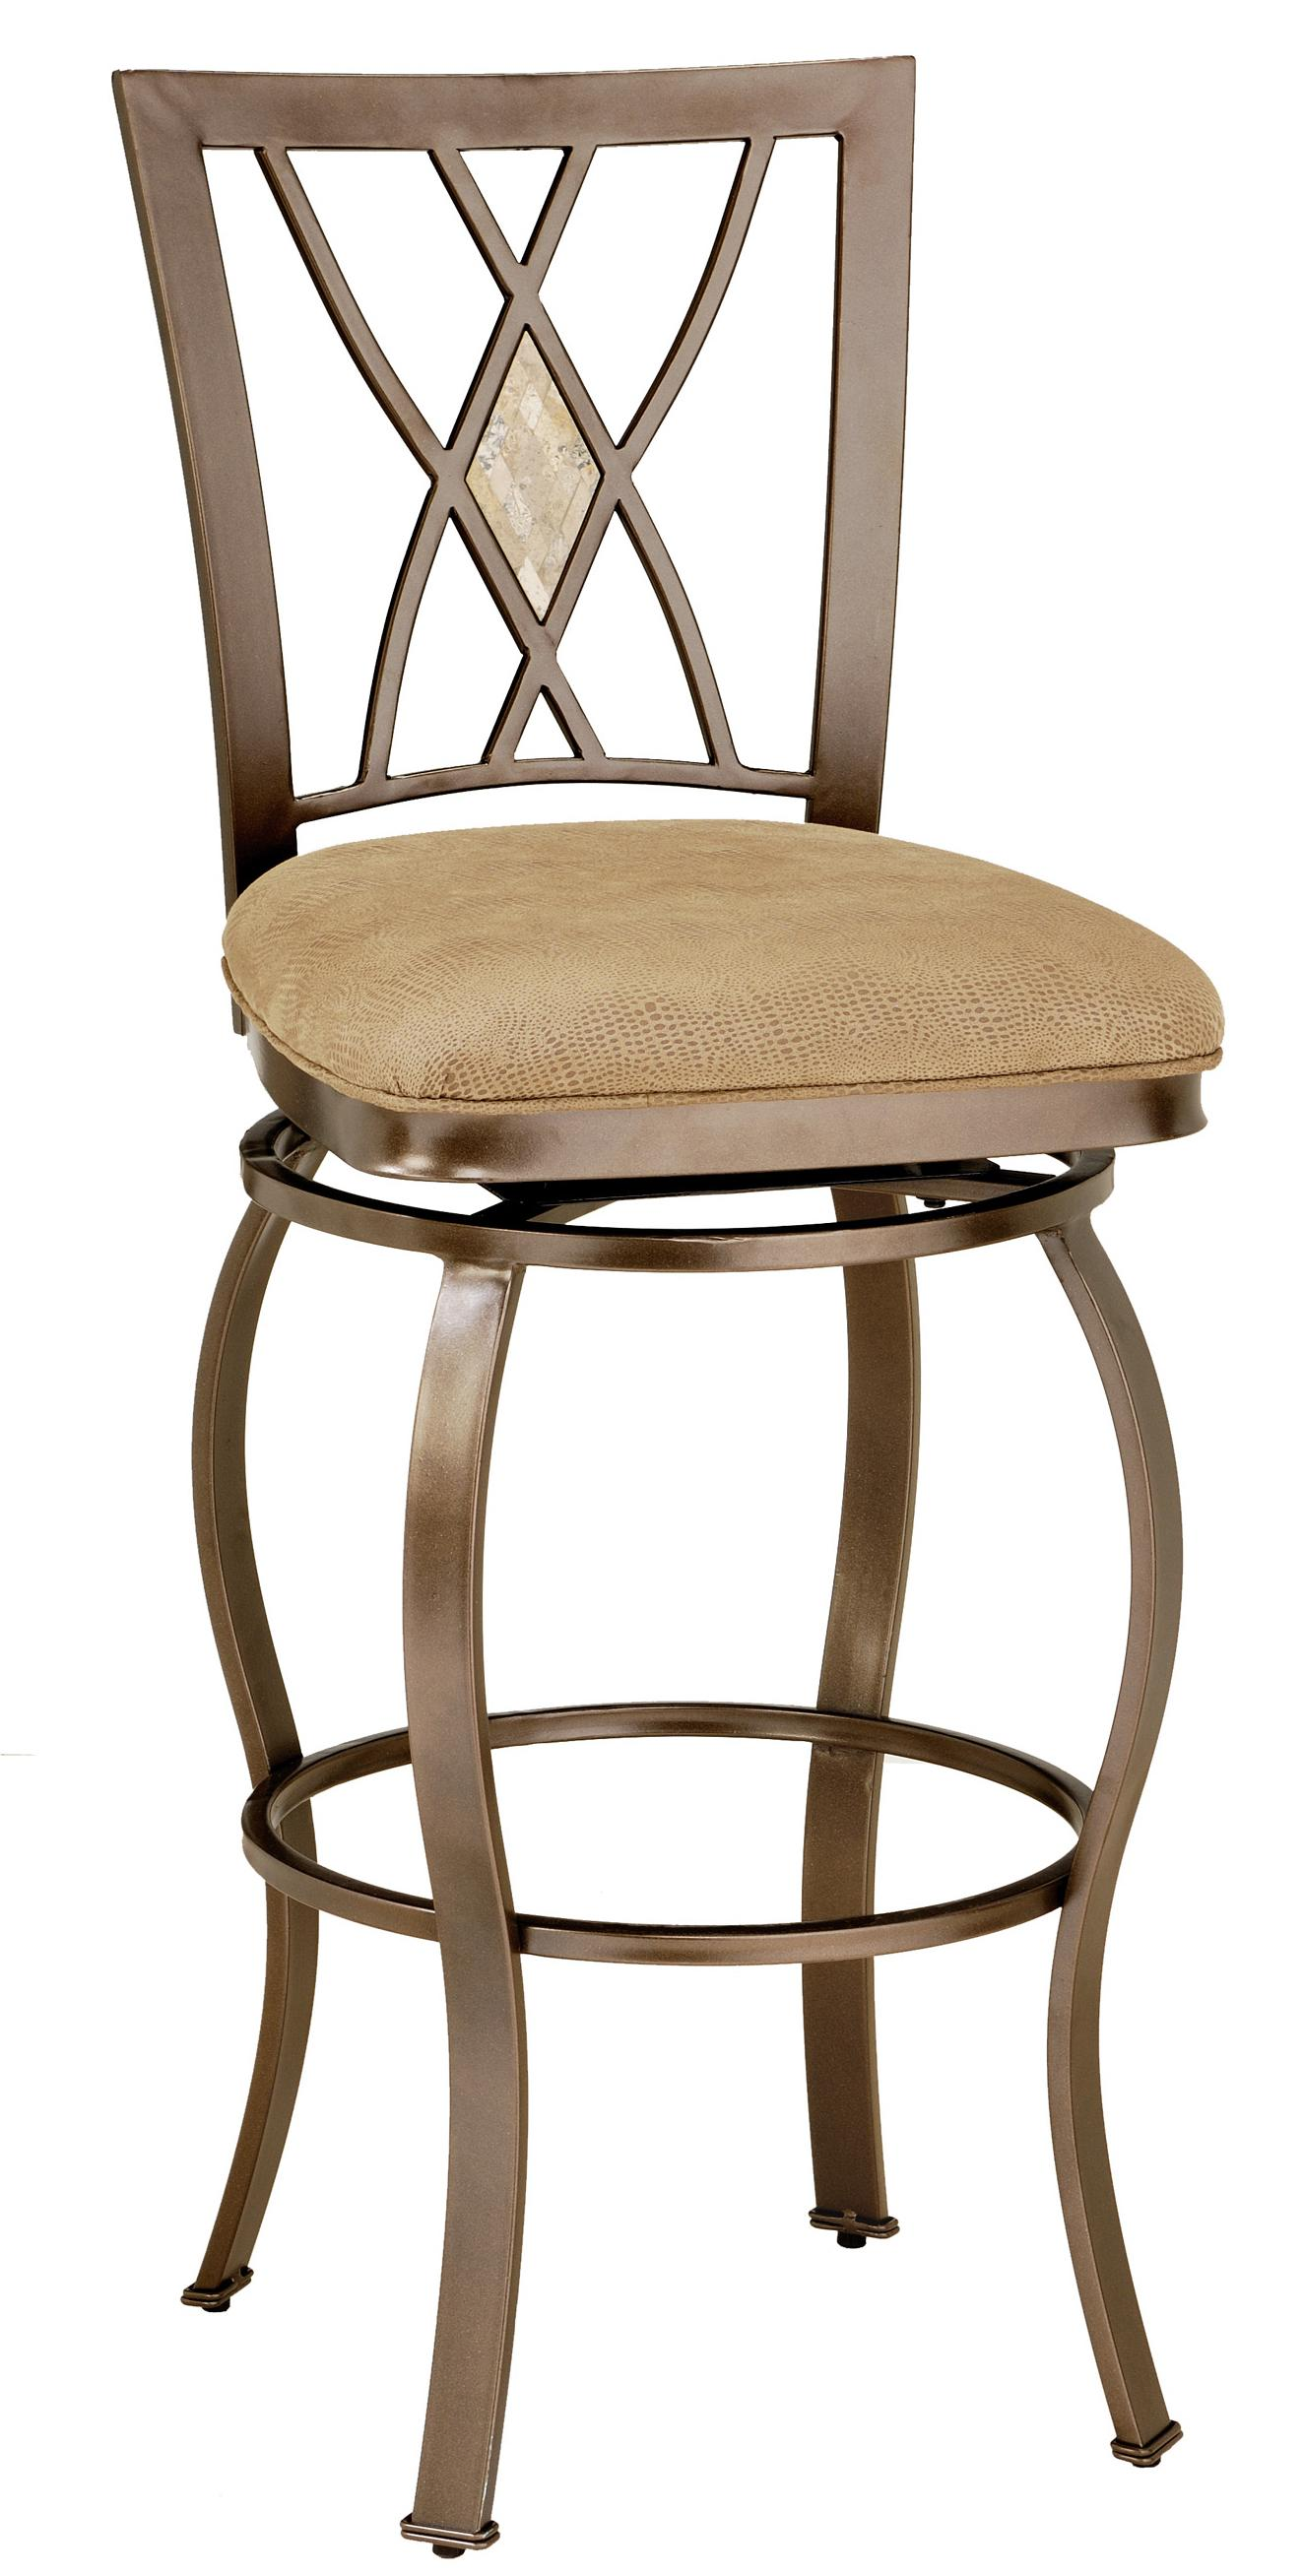 Inspirational Swivel Bar Stools with Backs